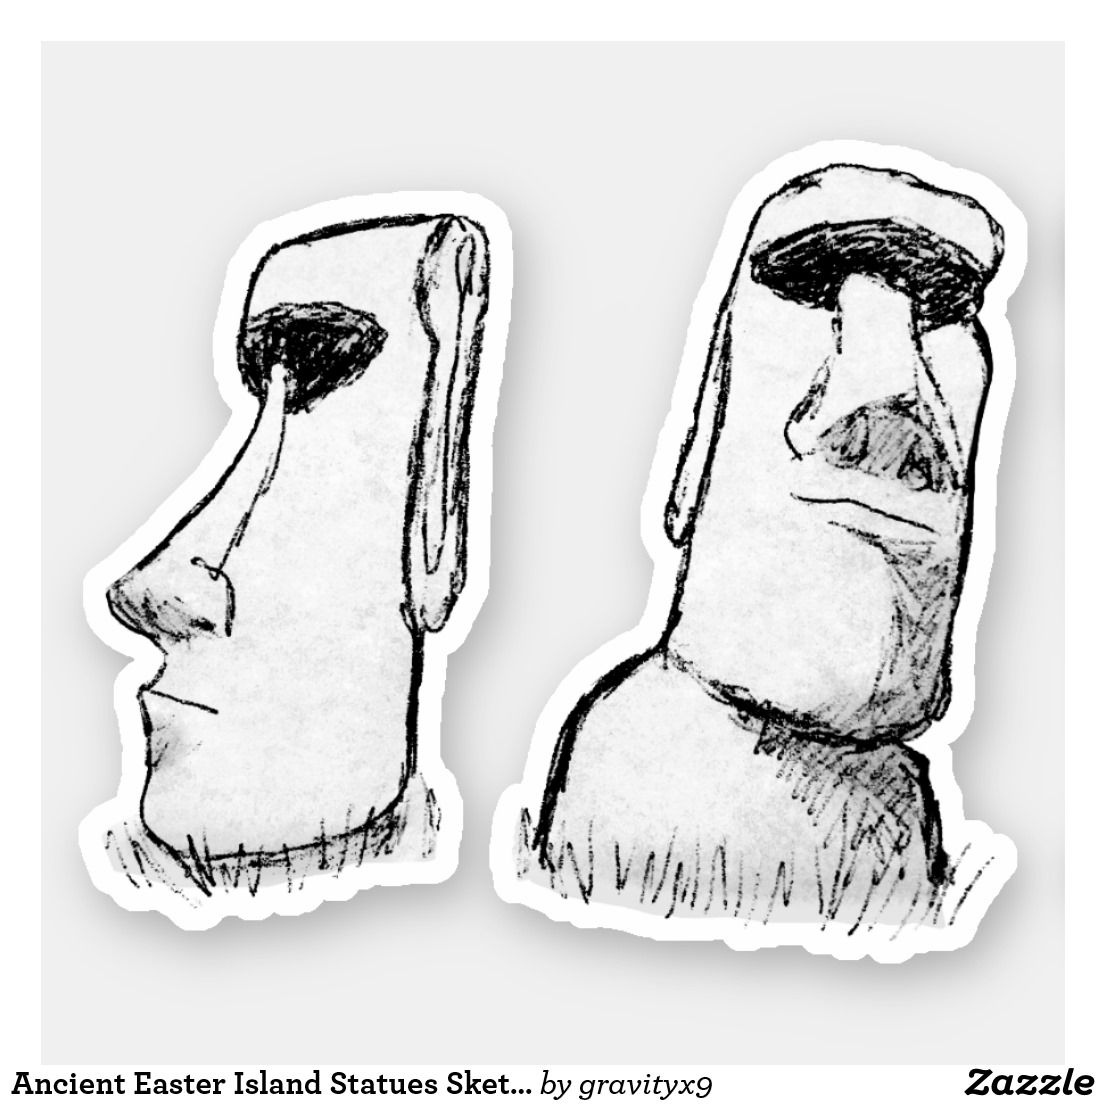 Ancient Easter Island Statues Sketch Sticker Zazzle Com Easter Island Statues Mermaid Statues Easter Island